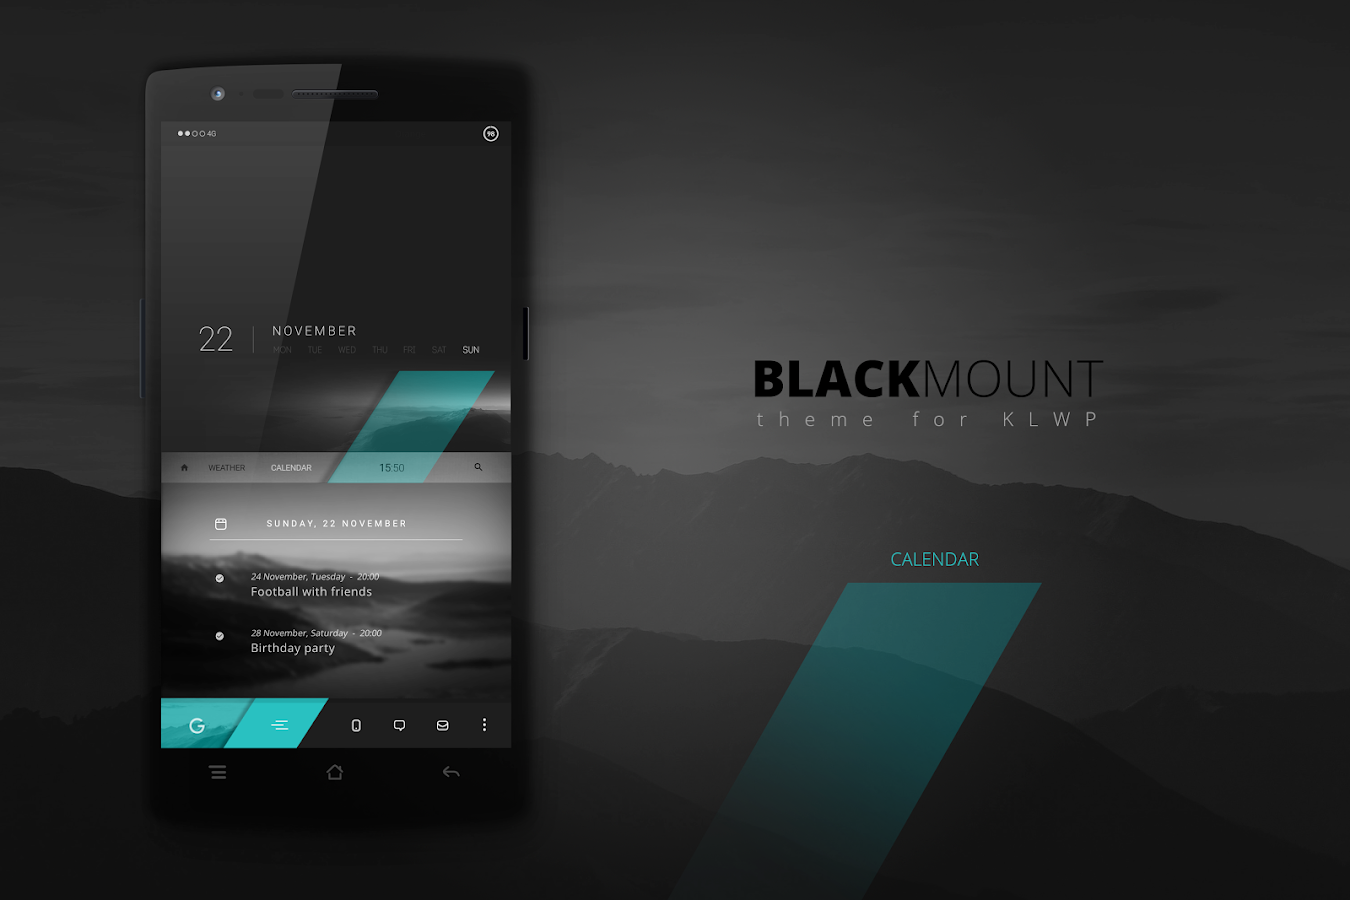 Blackmount theme for KLWP Screenshot 2